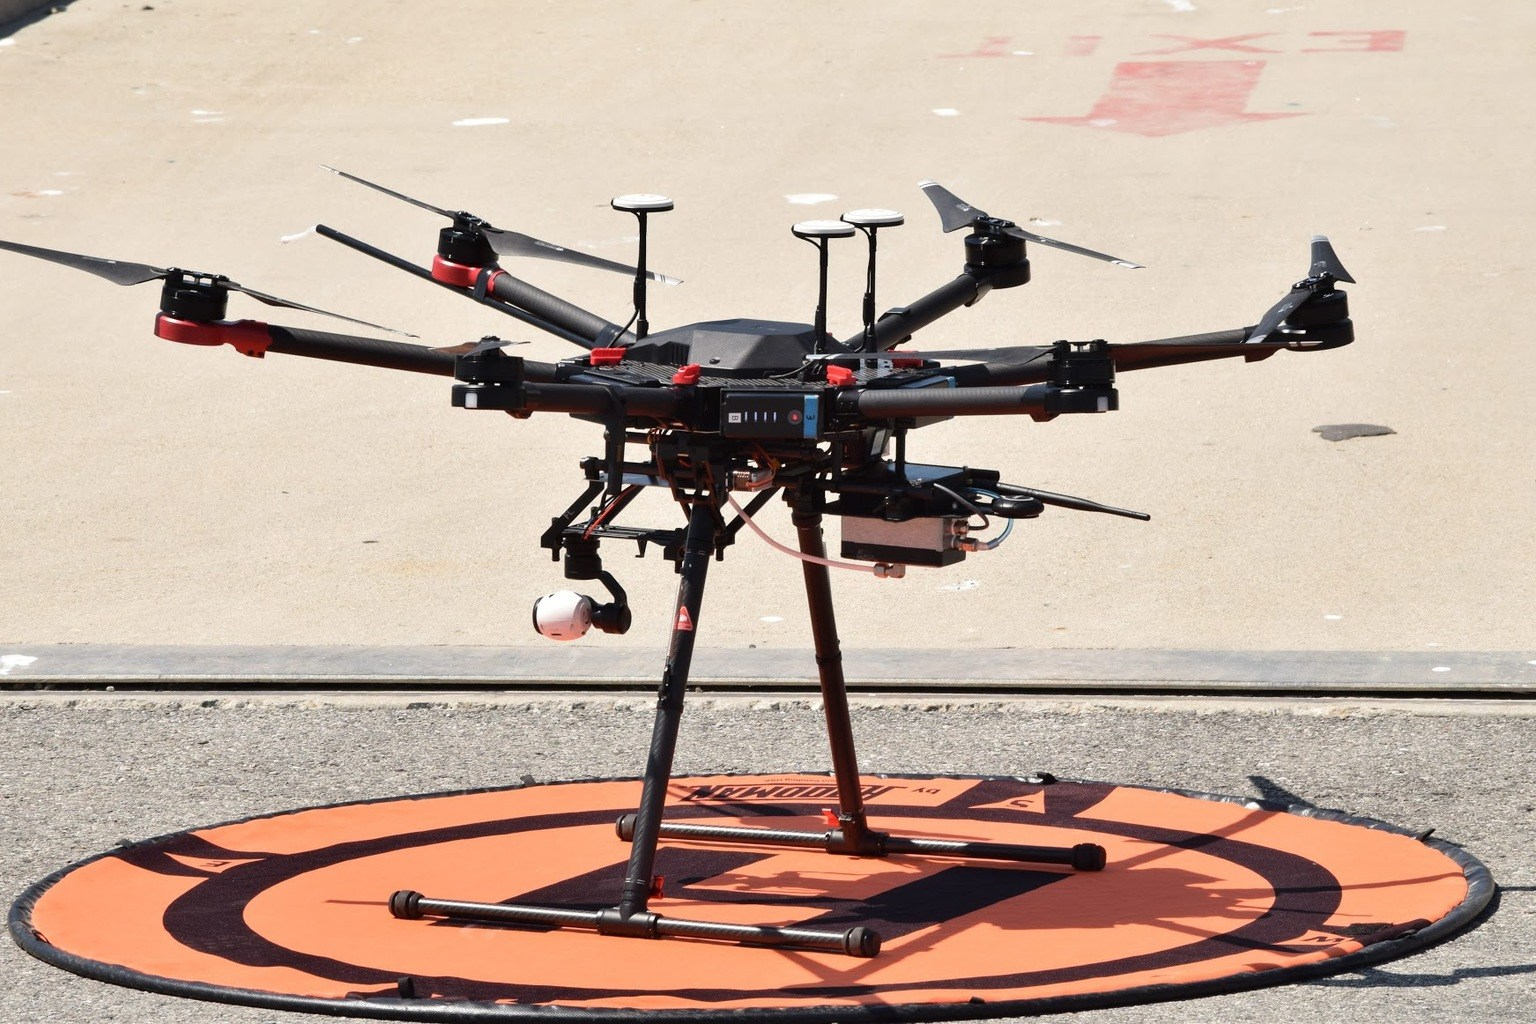 Drone monitoring of ship emissions could save lives, protect